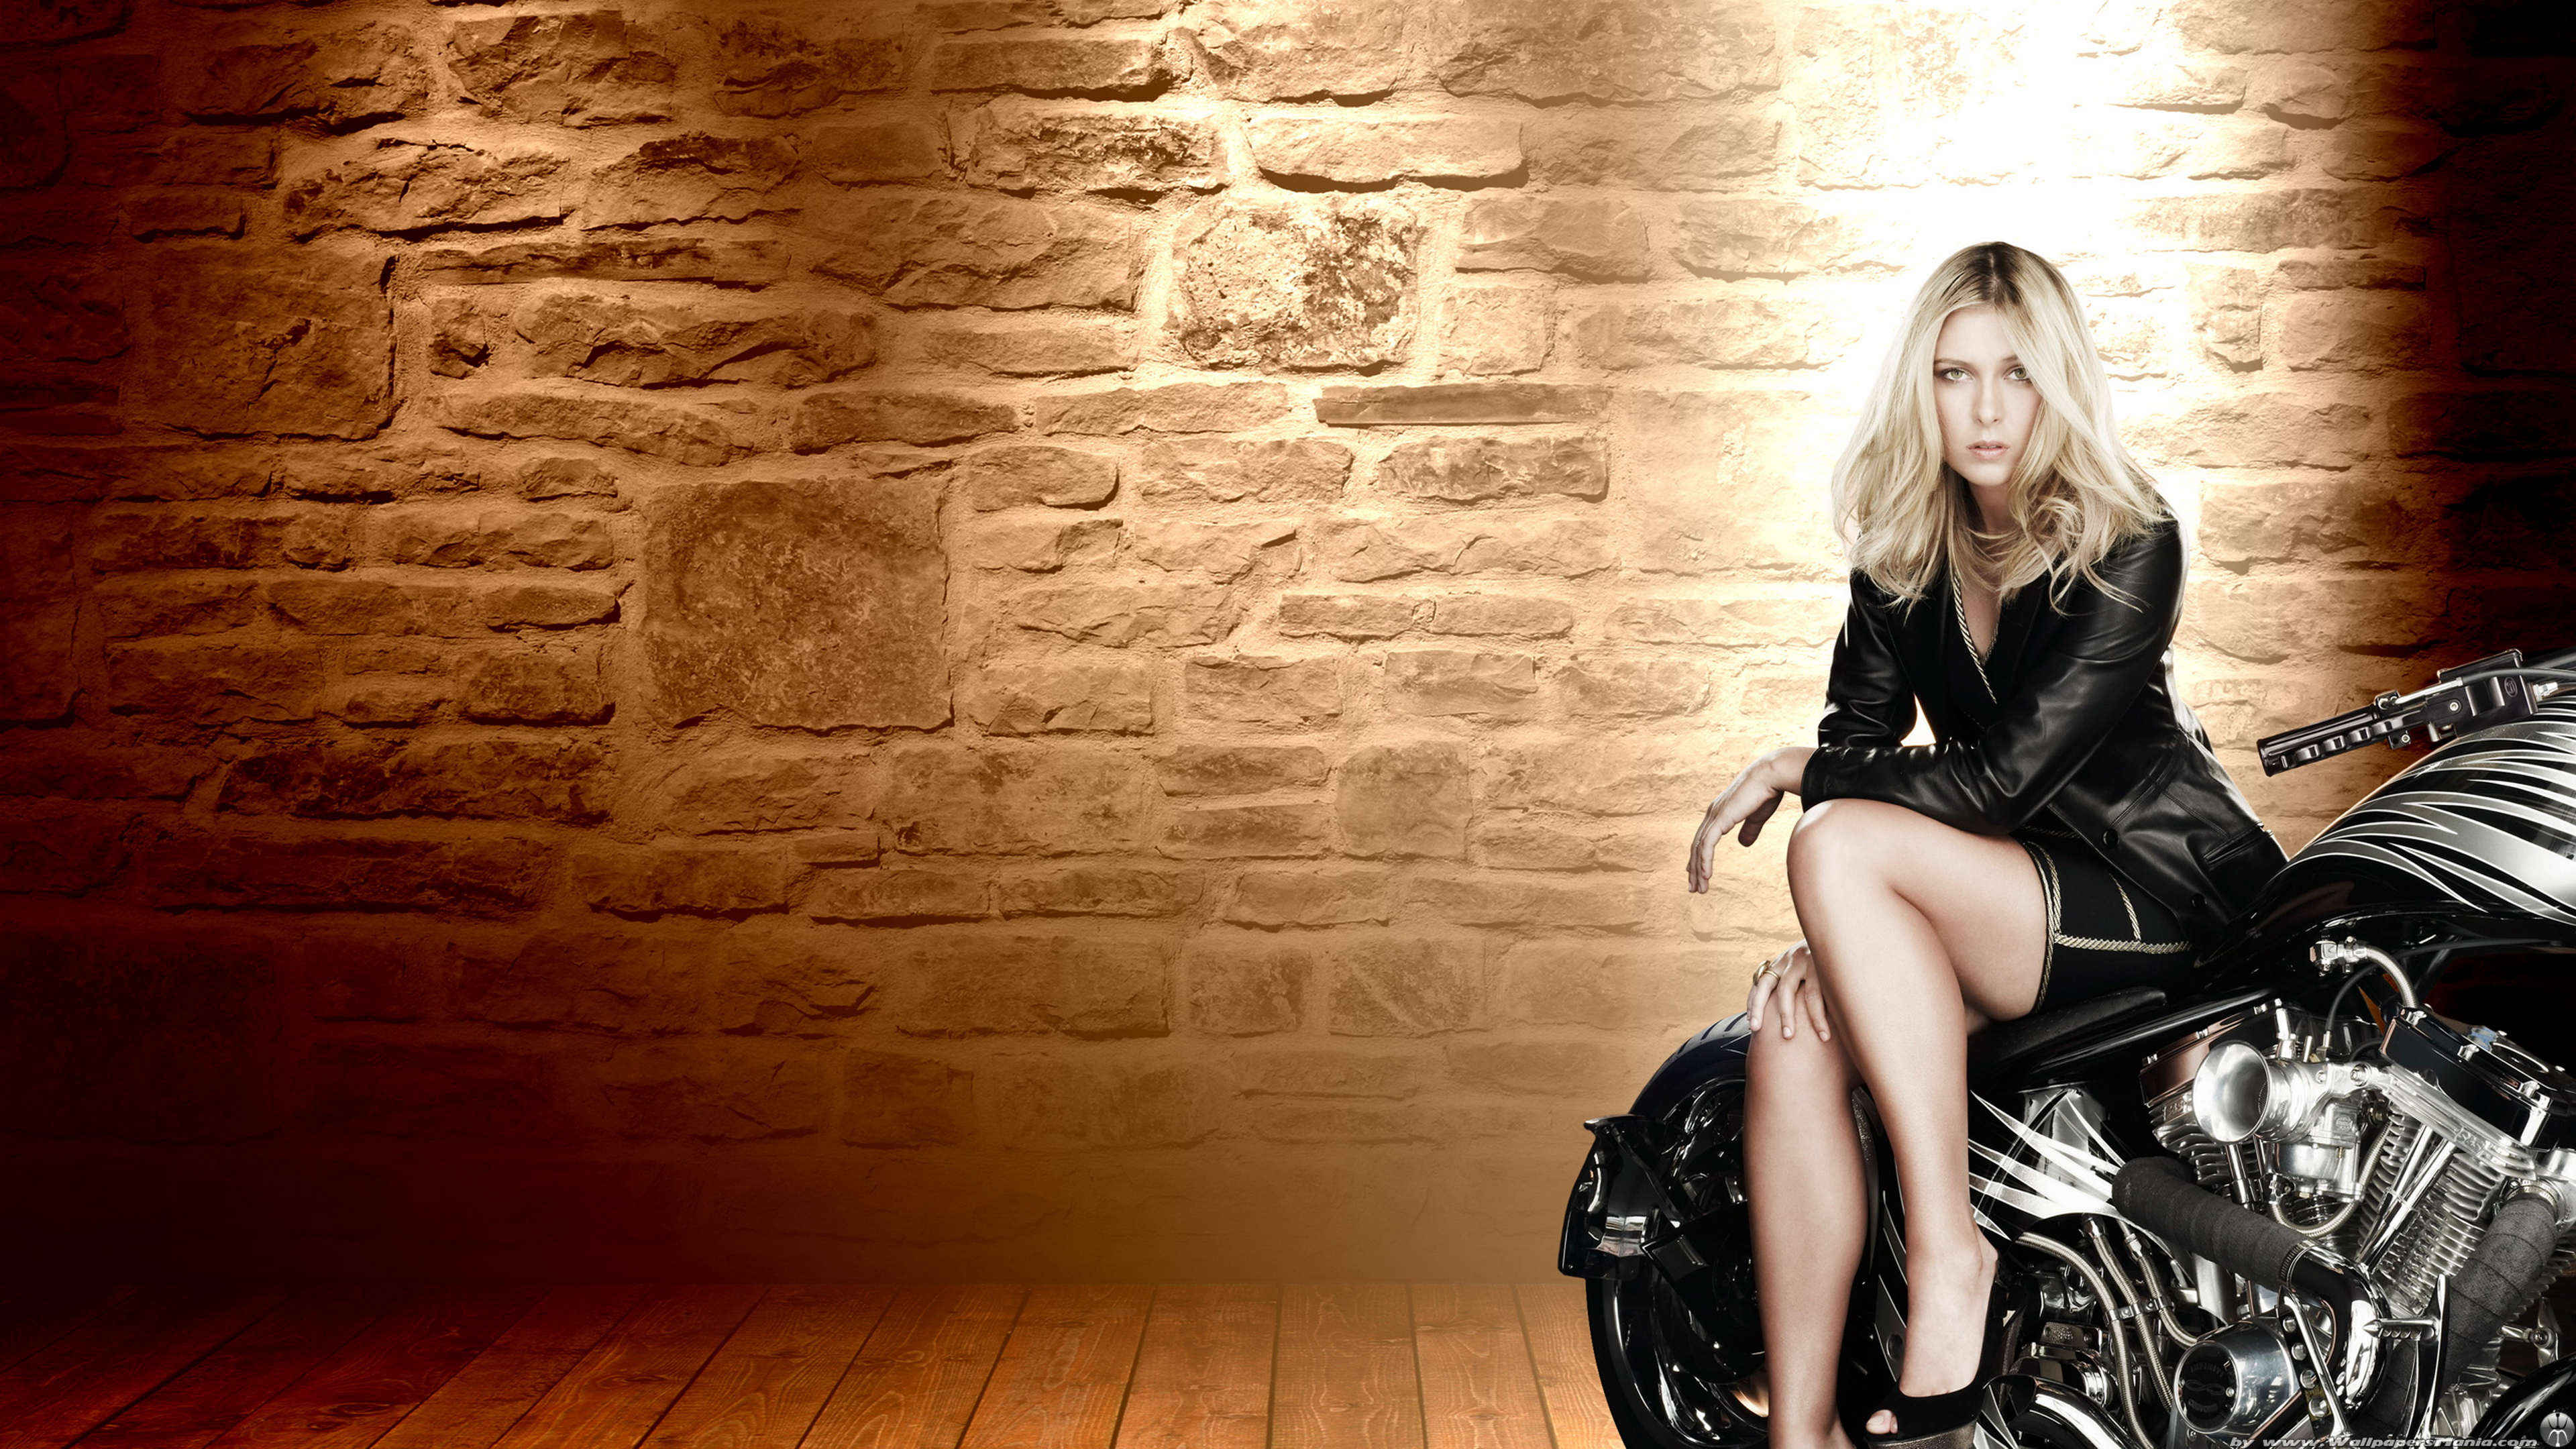 Maria Sharapova on a Motorbike, Feet Ultra HD 4k Wallpaper